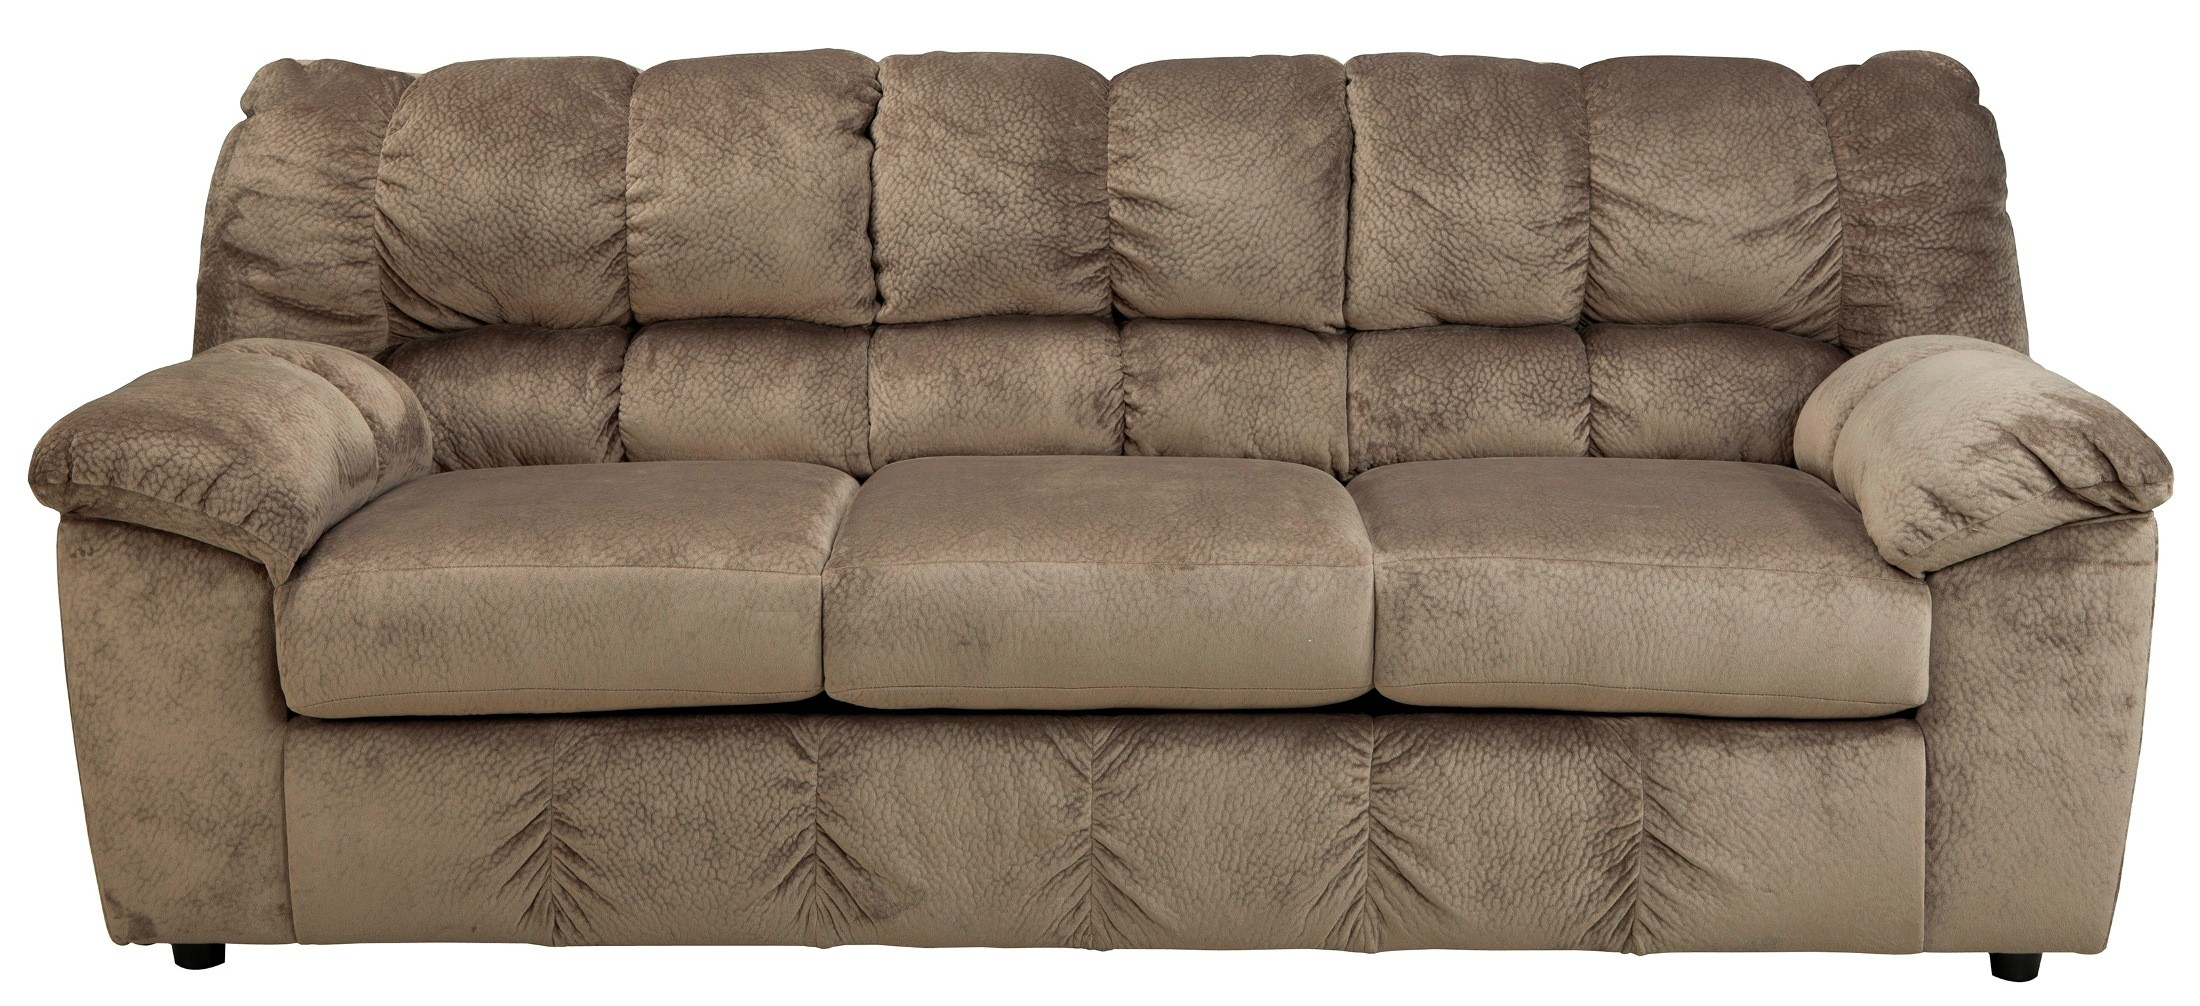 Julson Dune Stationary Sofa from Ashley 2660138  : 26601 38 sw from colemanfurniture.com size 2200 x 1006 jpeg 642kB